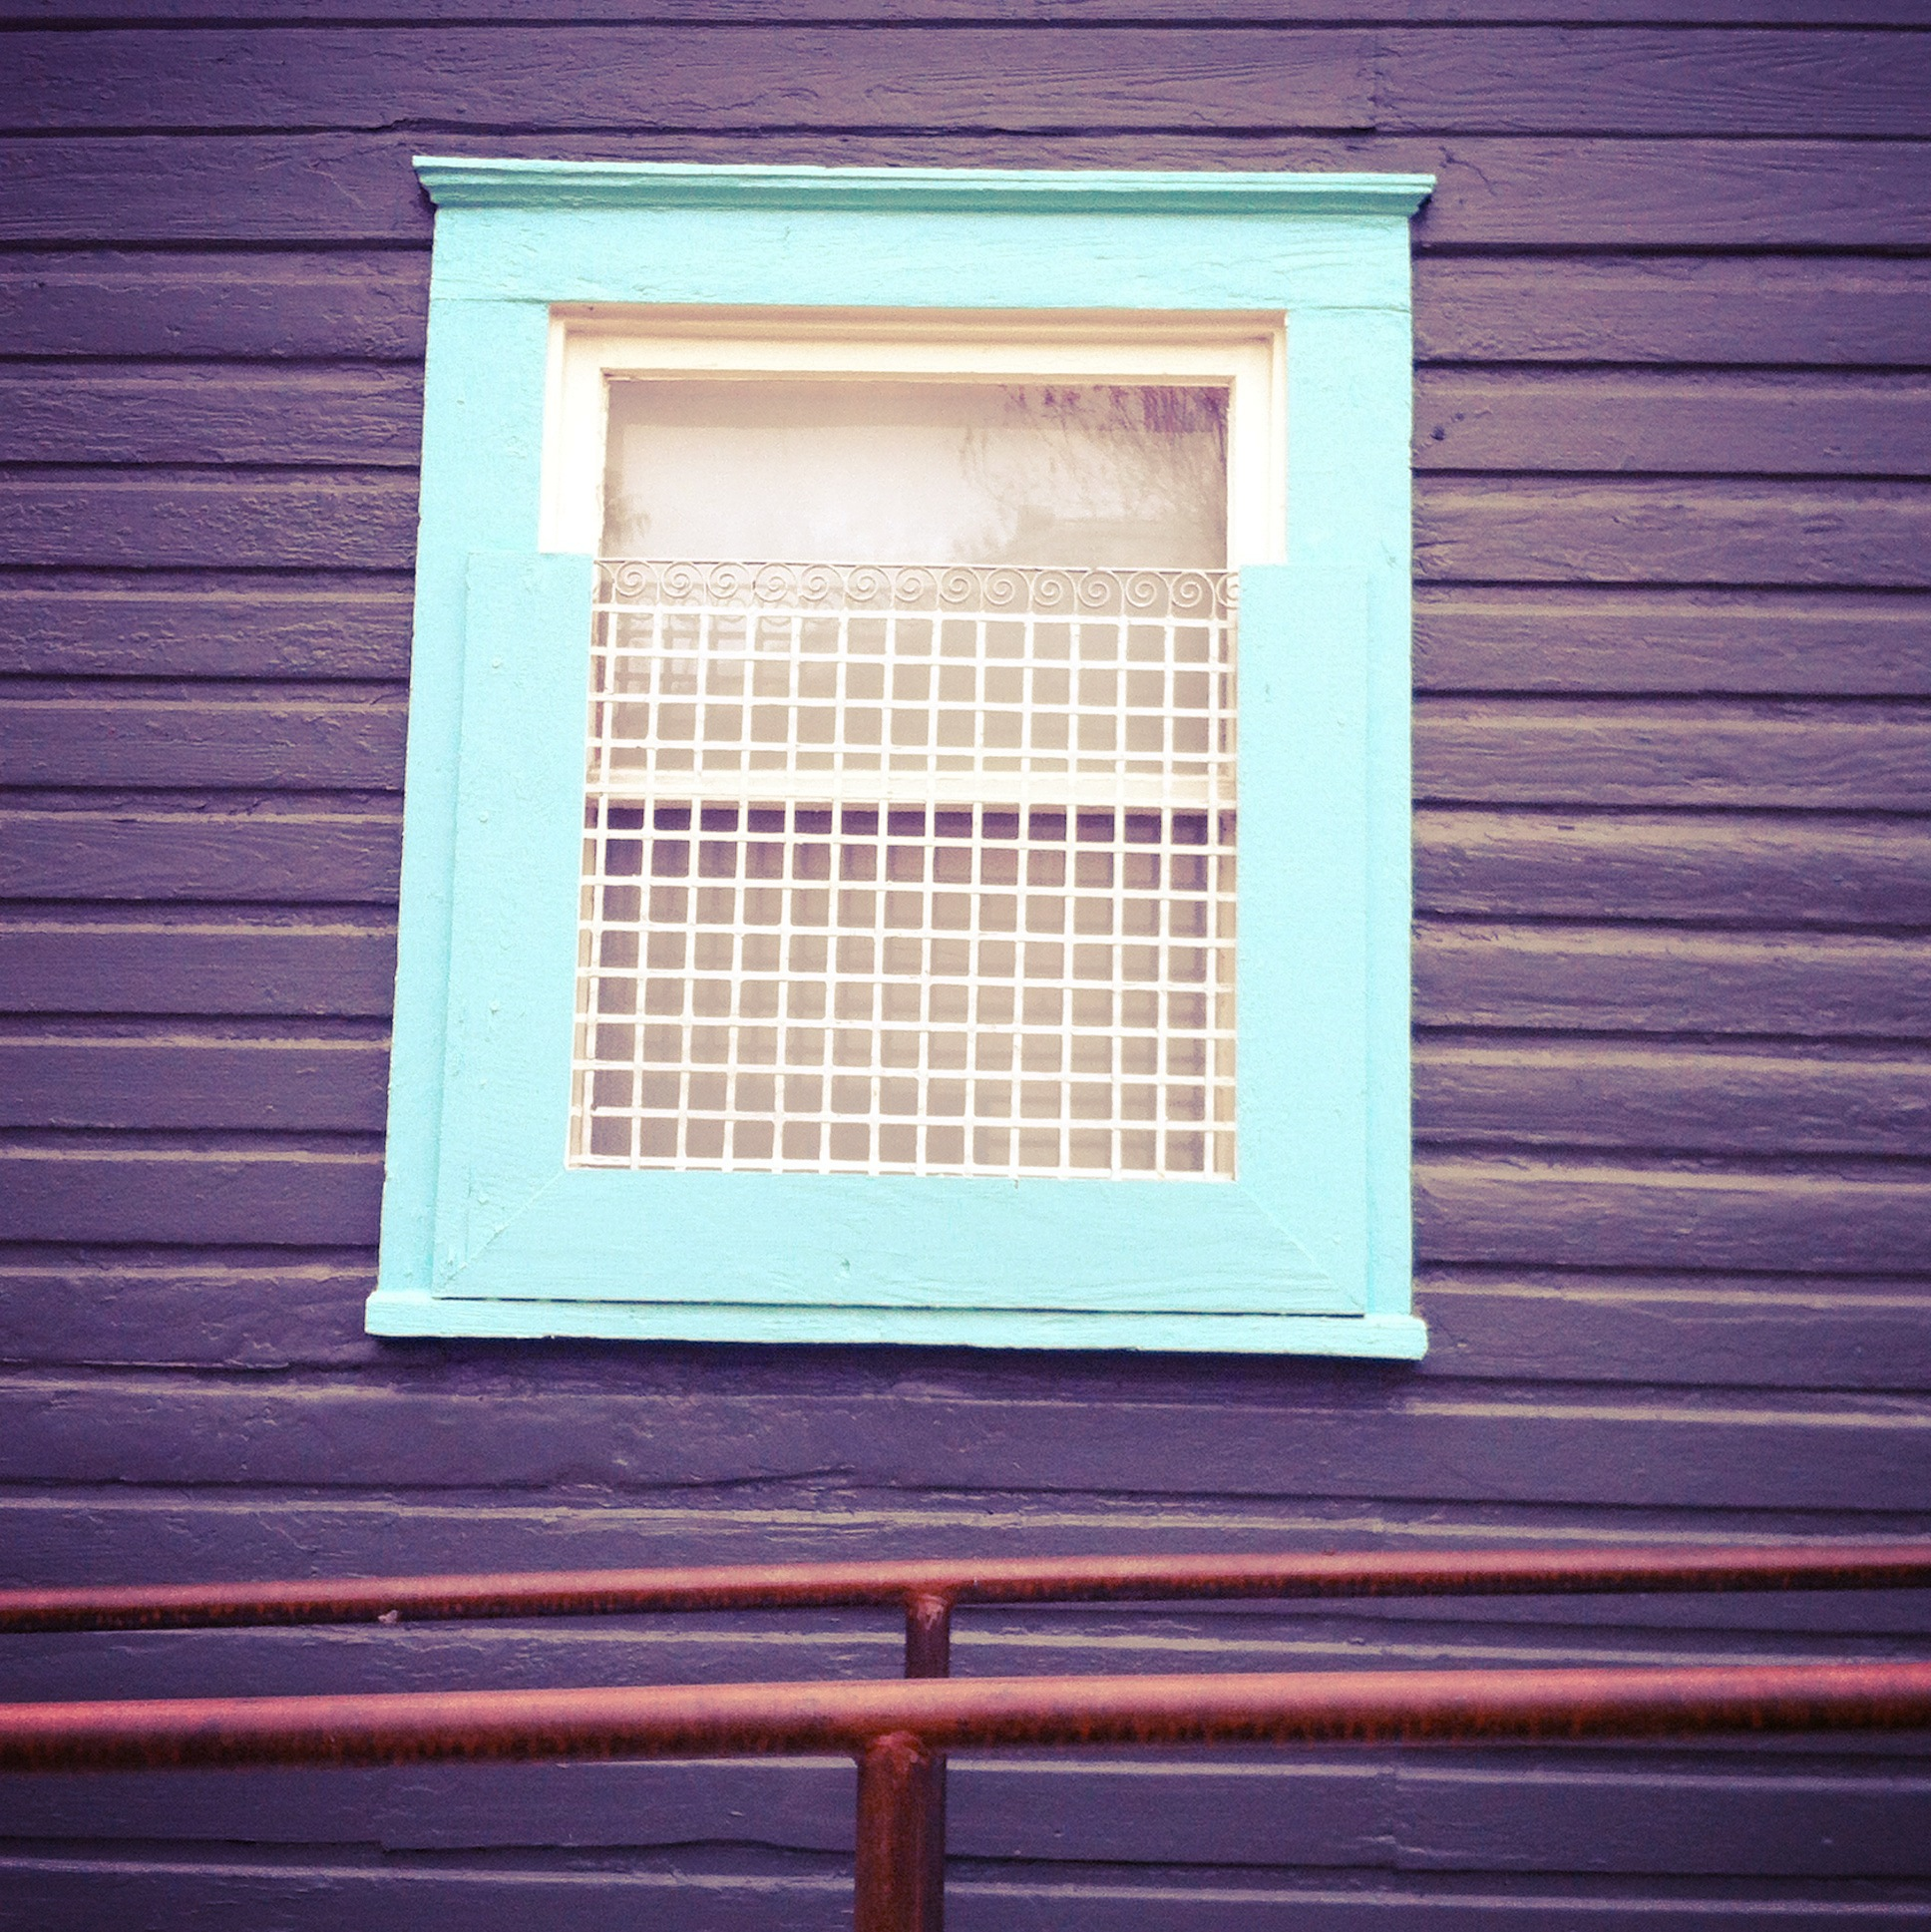 Random window that I thought was fun!